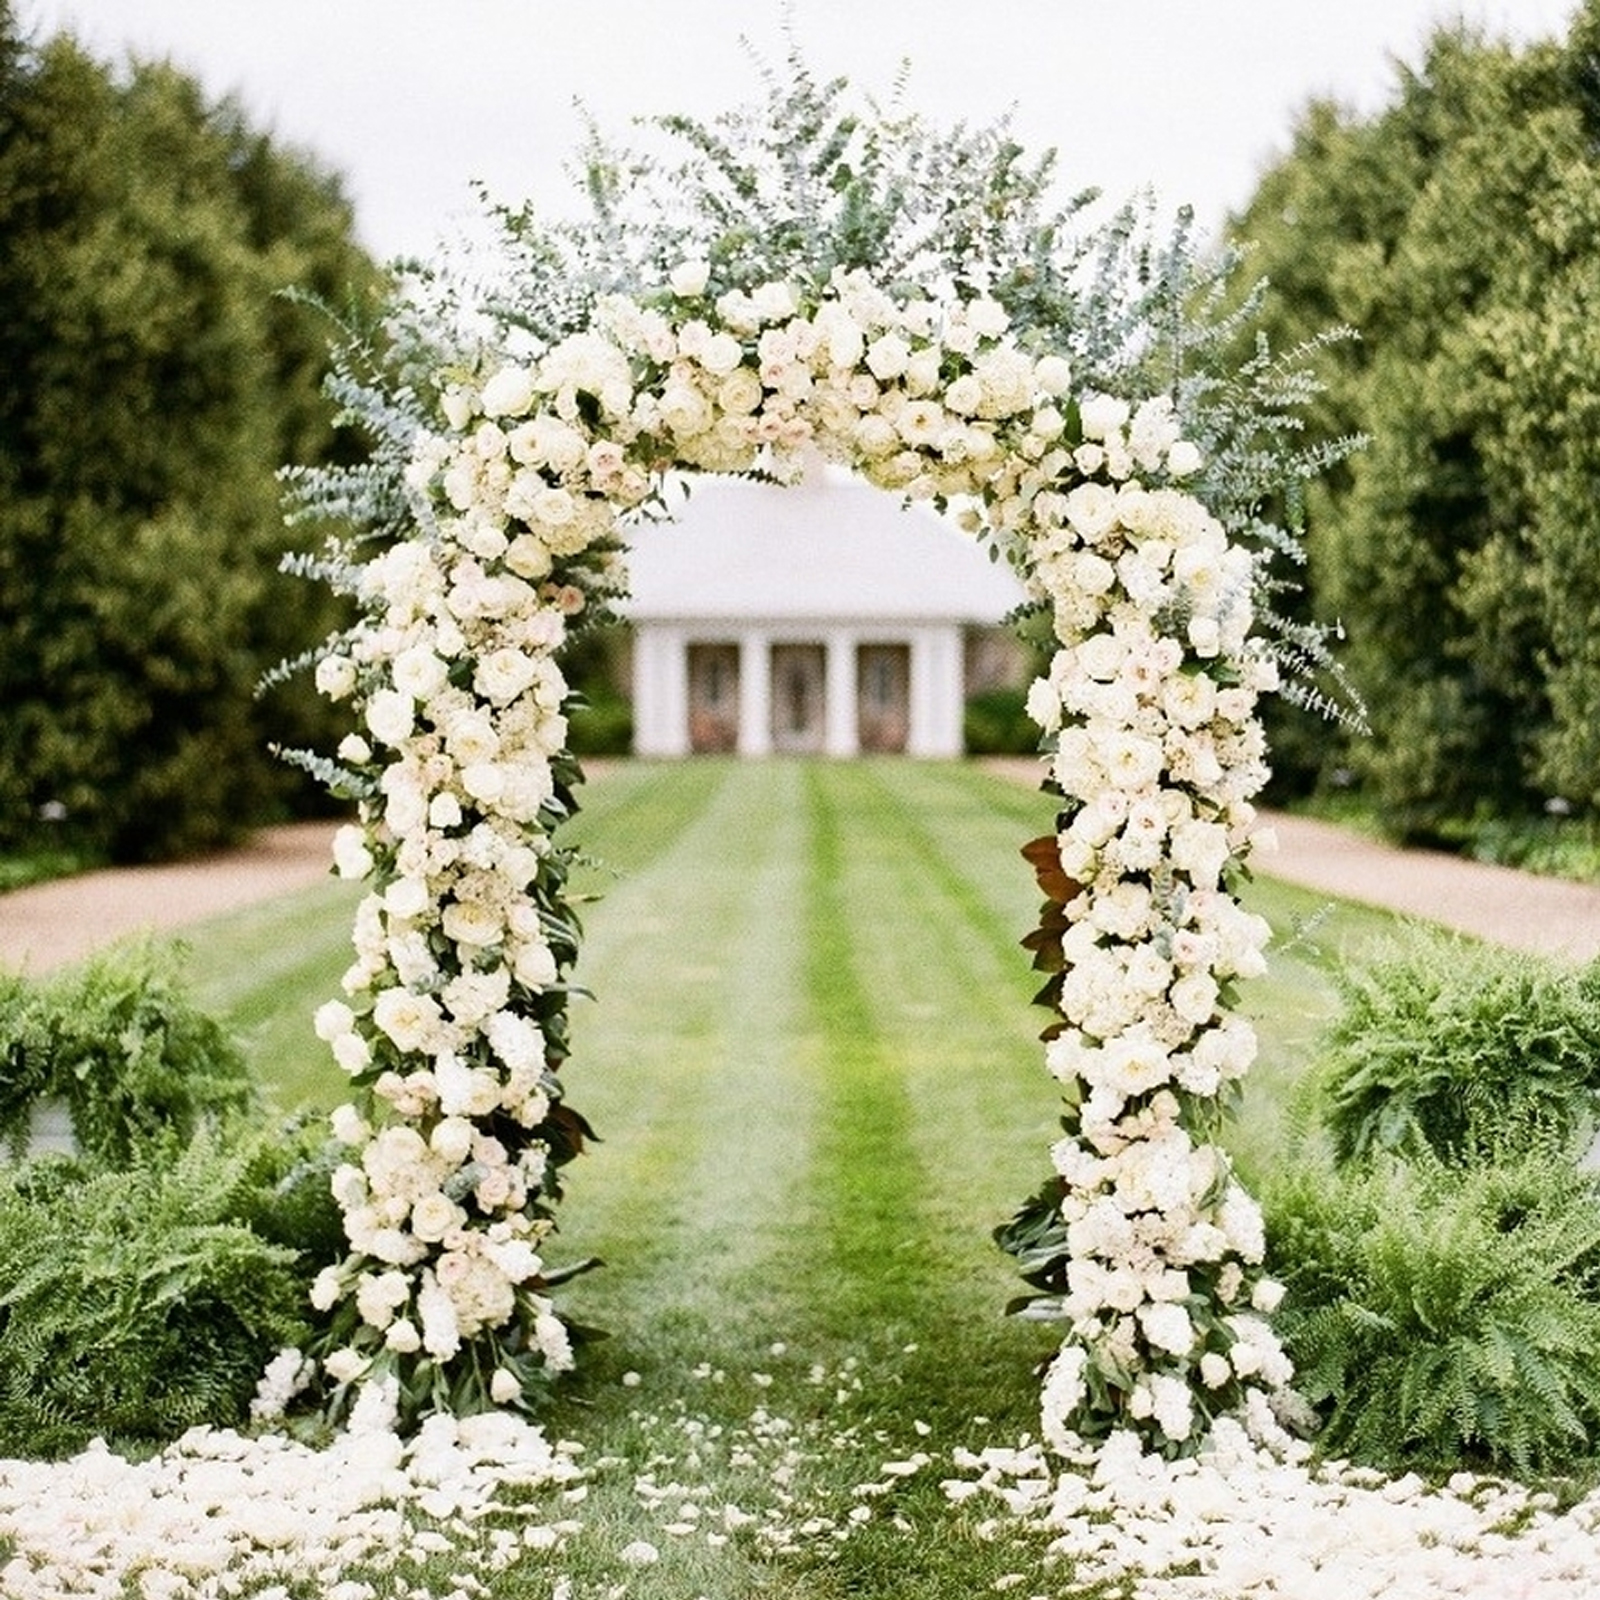 Garden Wedding Altar Ideas: 7.5 Ft White Metal Arch Wedding Garden Bridal Party